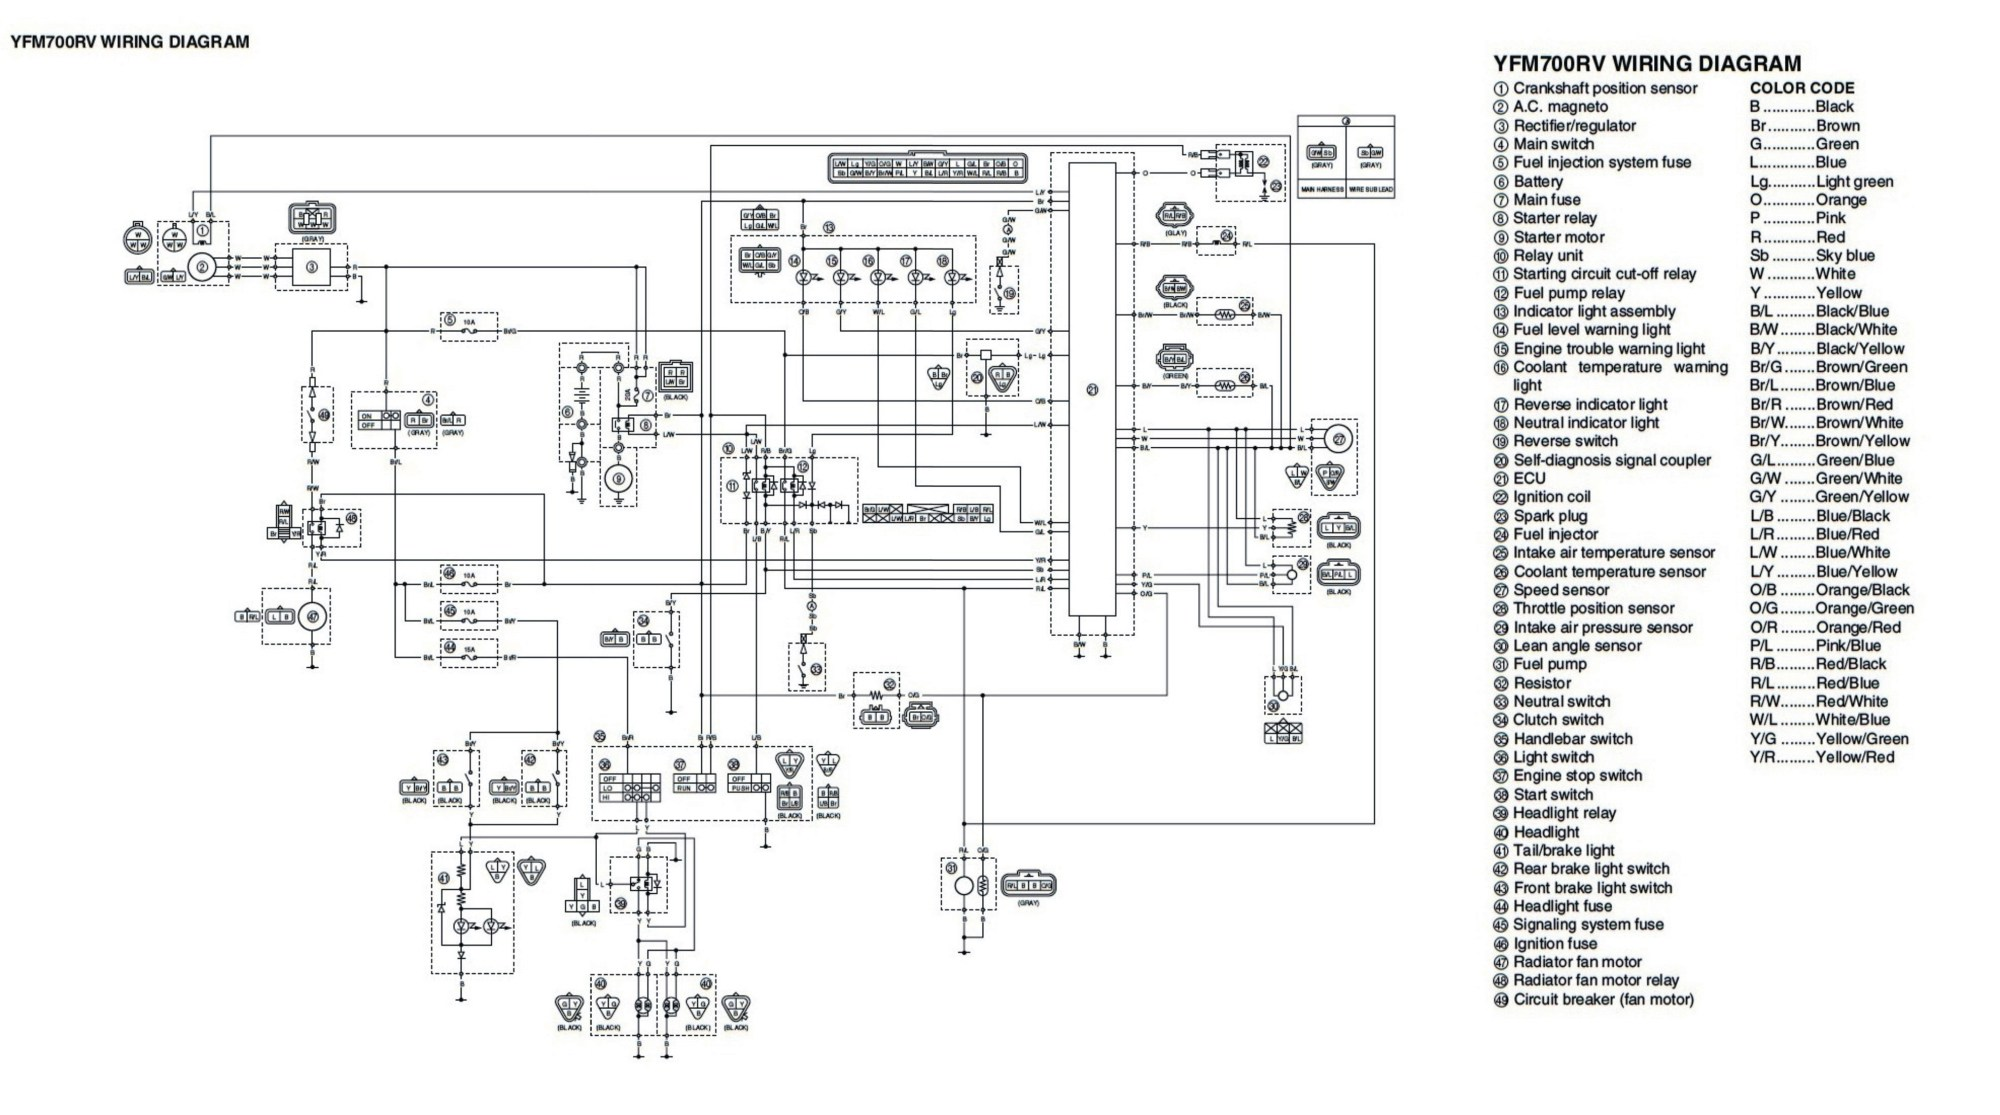 hight resolution of suzuki gsx r wiring diagram k 6 wiring diagram elsalvadorla 05 gsxr 600 headlight wiring diagram 2005 suzuki gsxr 600 wiring schematic